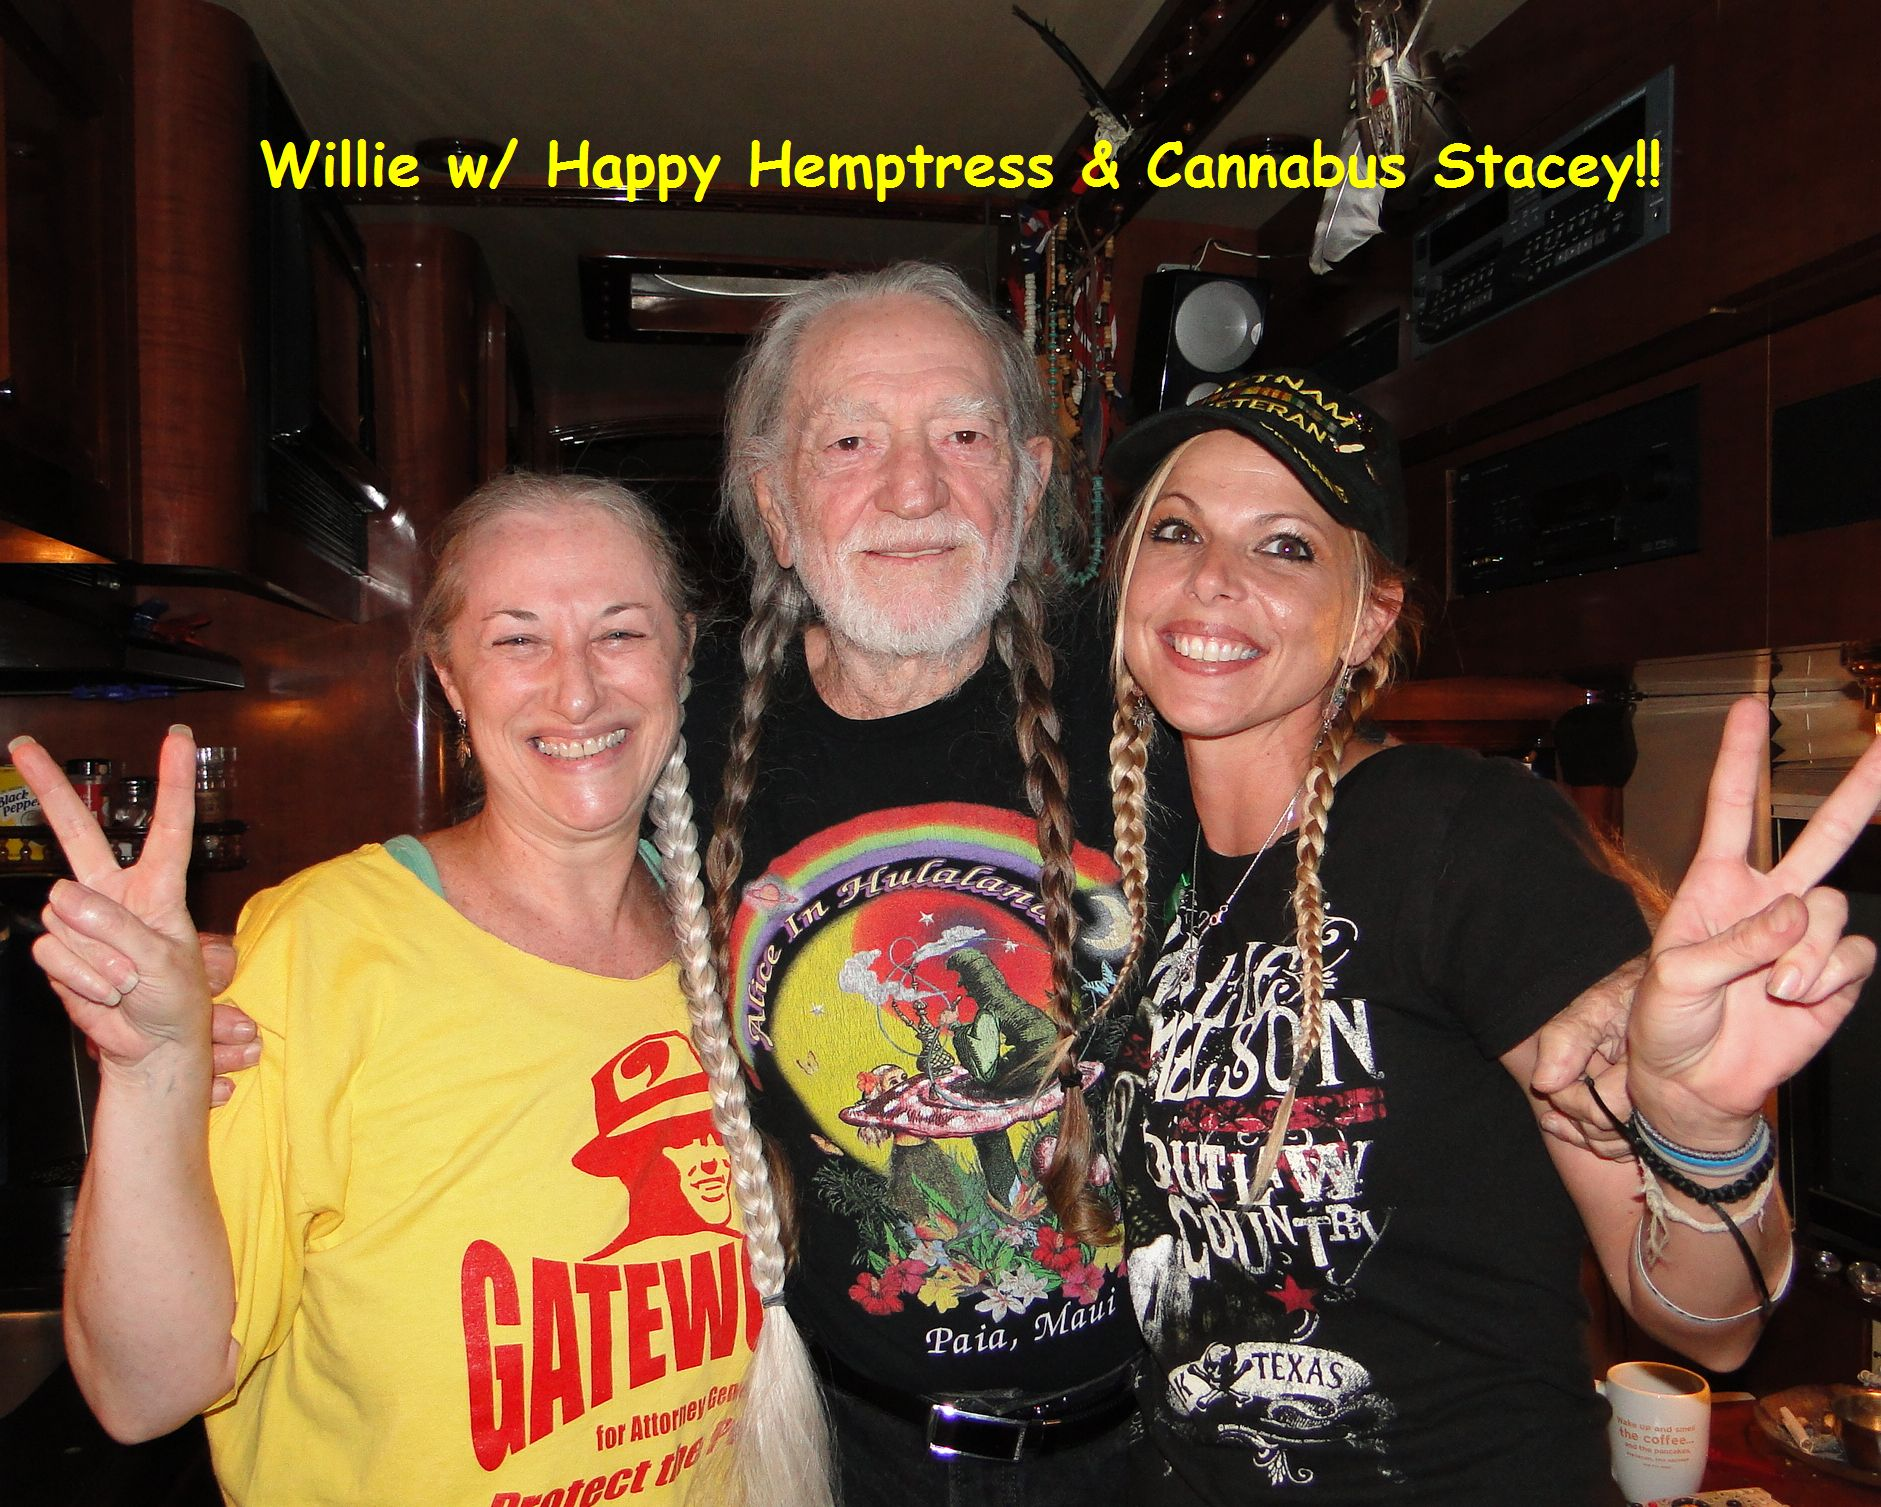 Hemptress, Willie & Cannabus Stacey